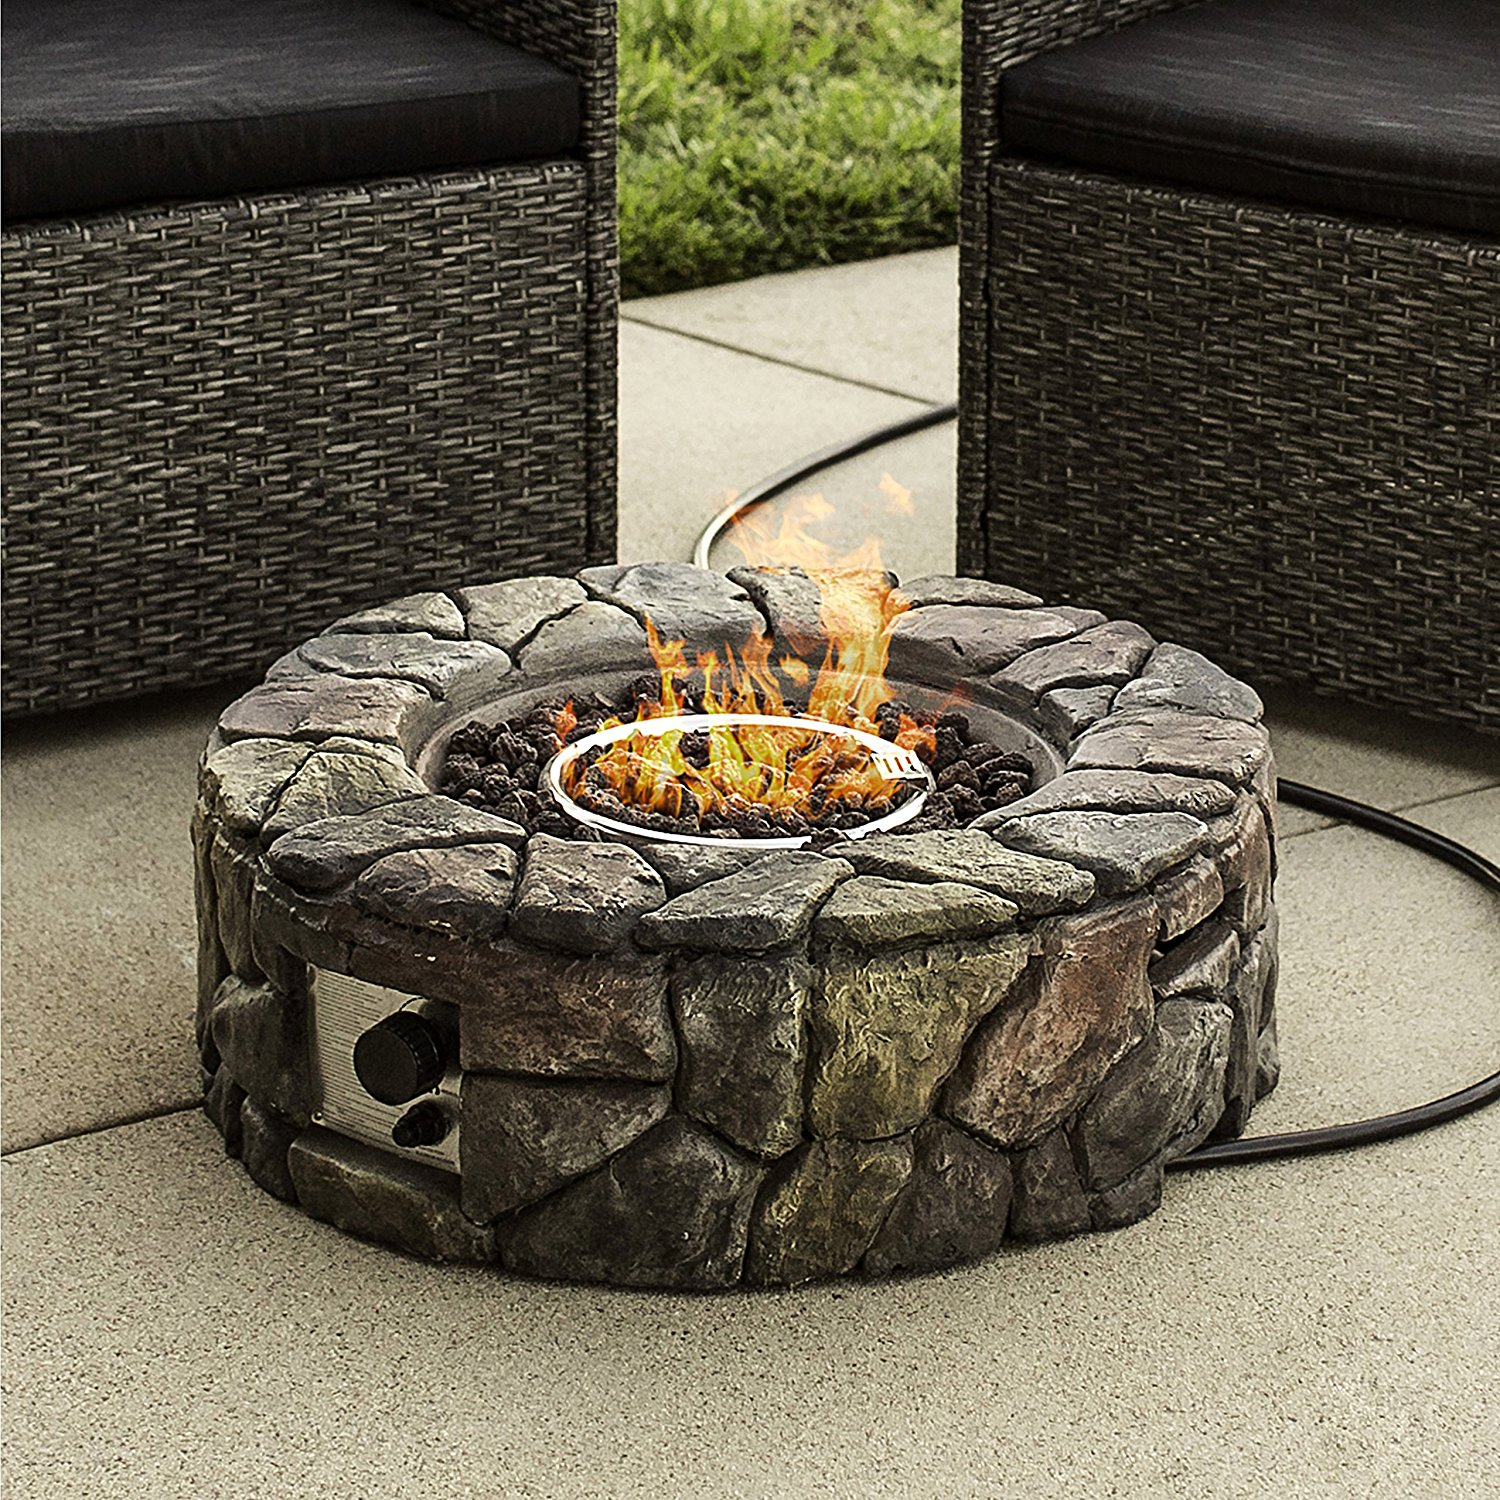 Best Choice Products Stone Design Fire Pit - Outdoor Home Patio Gas Firepit